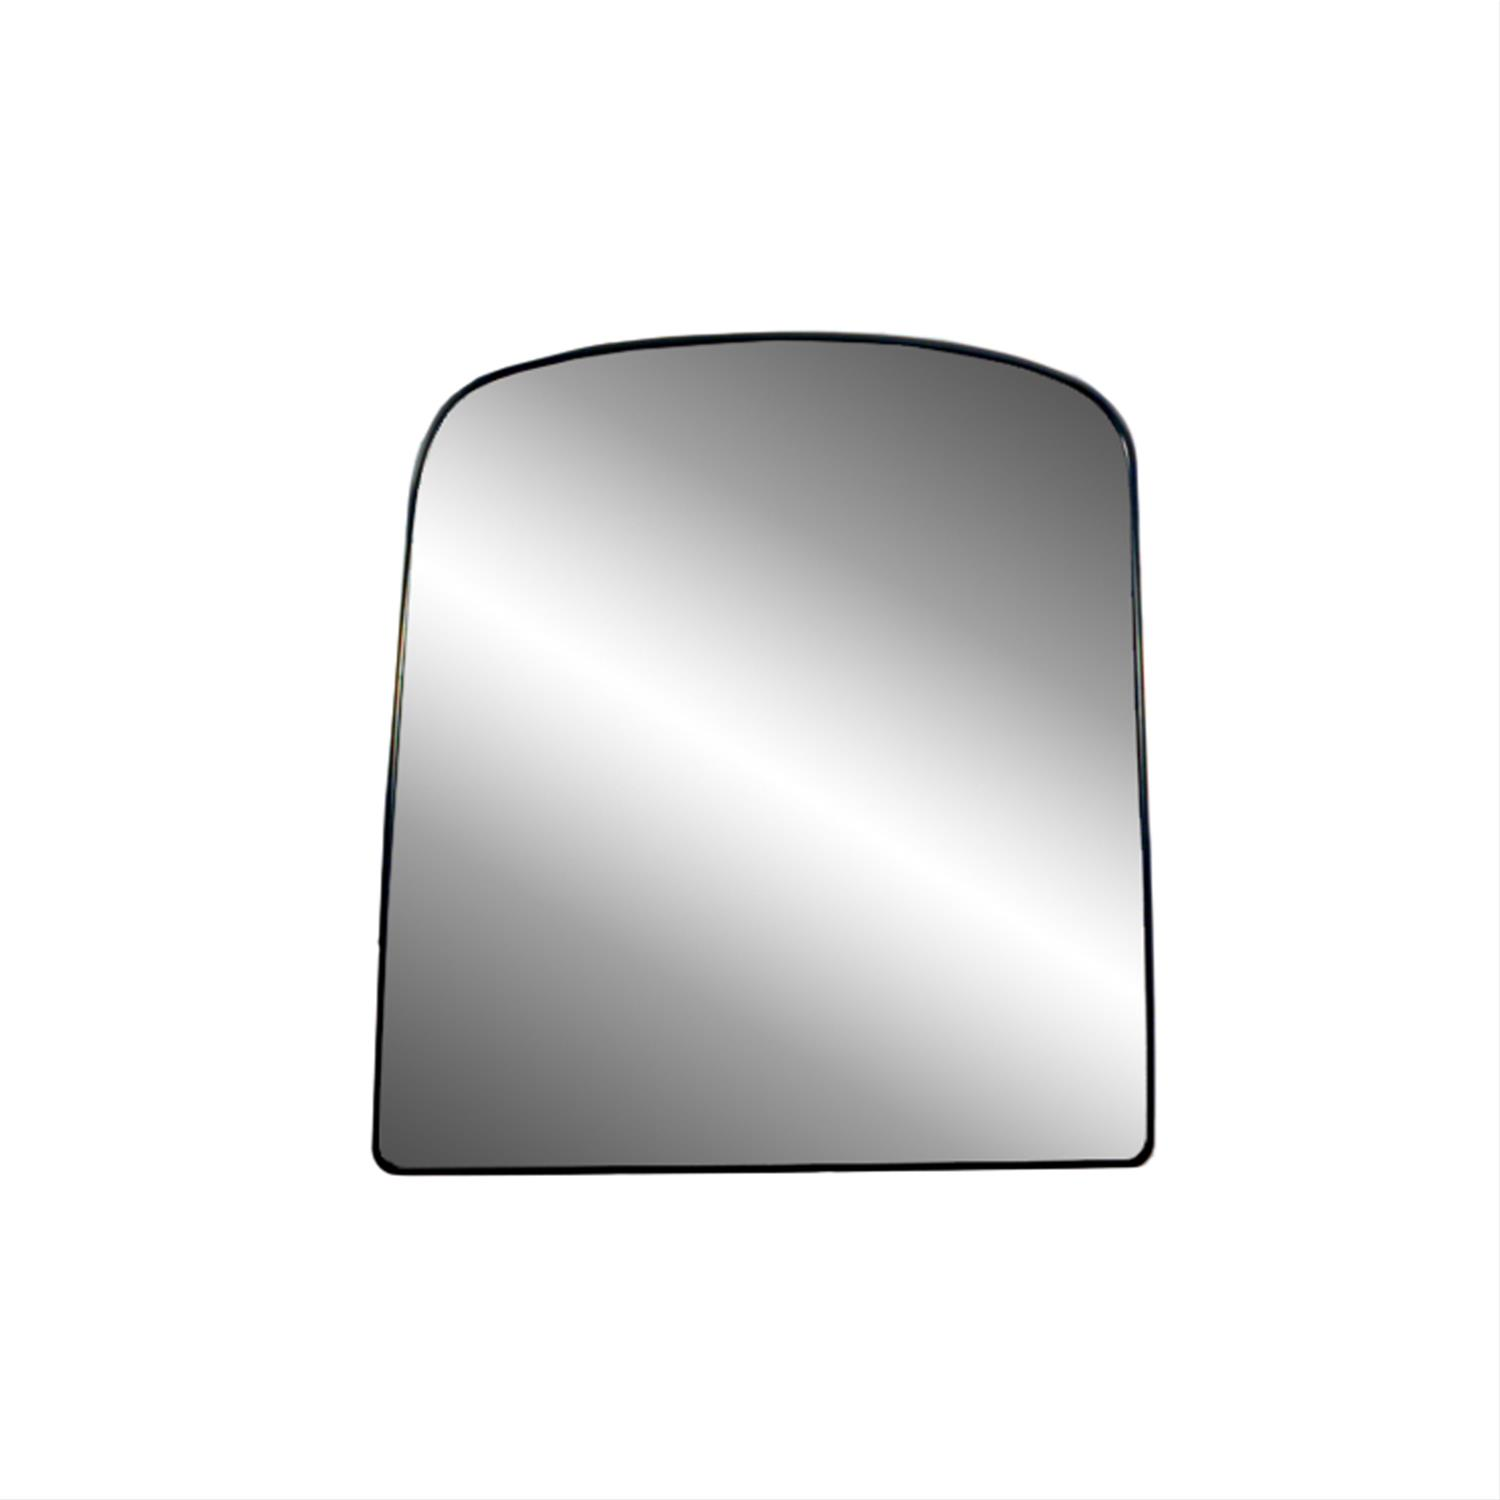 K source replacement mirror glass 88249 ebay for Mirror source